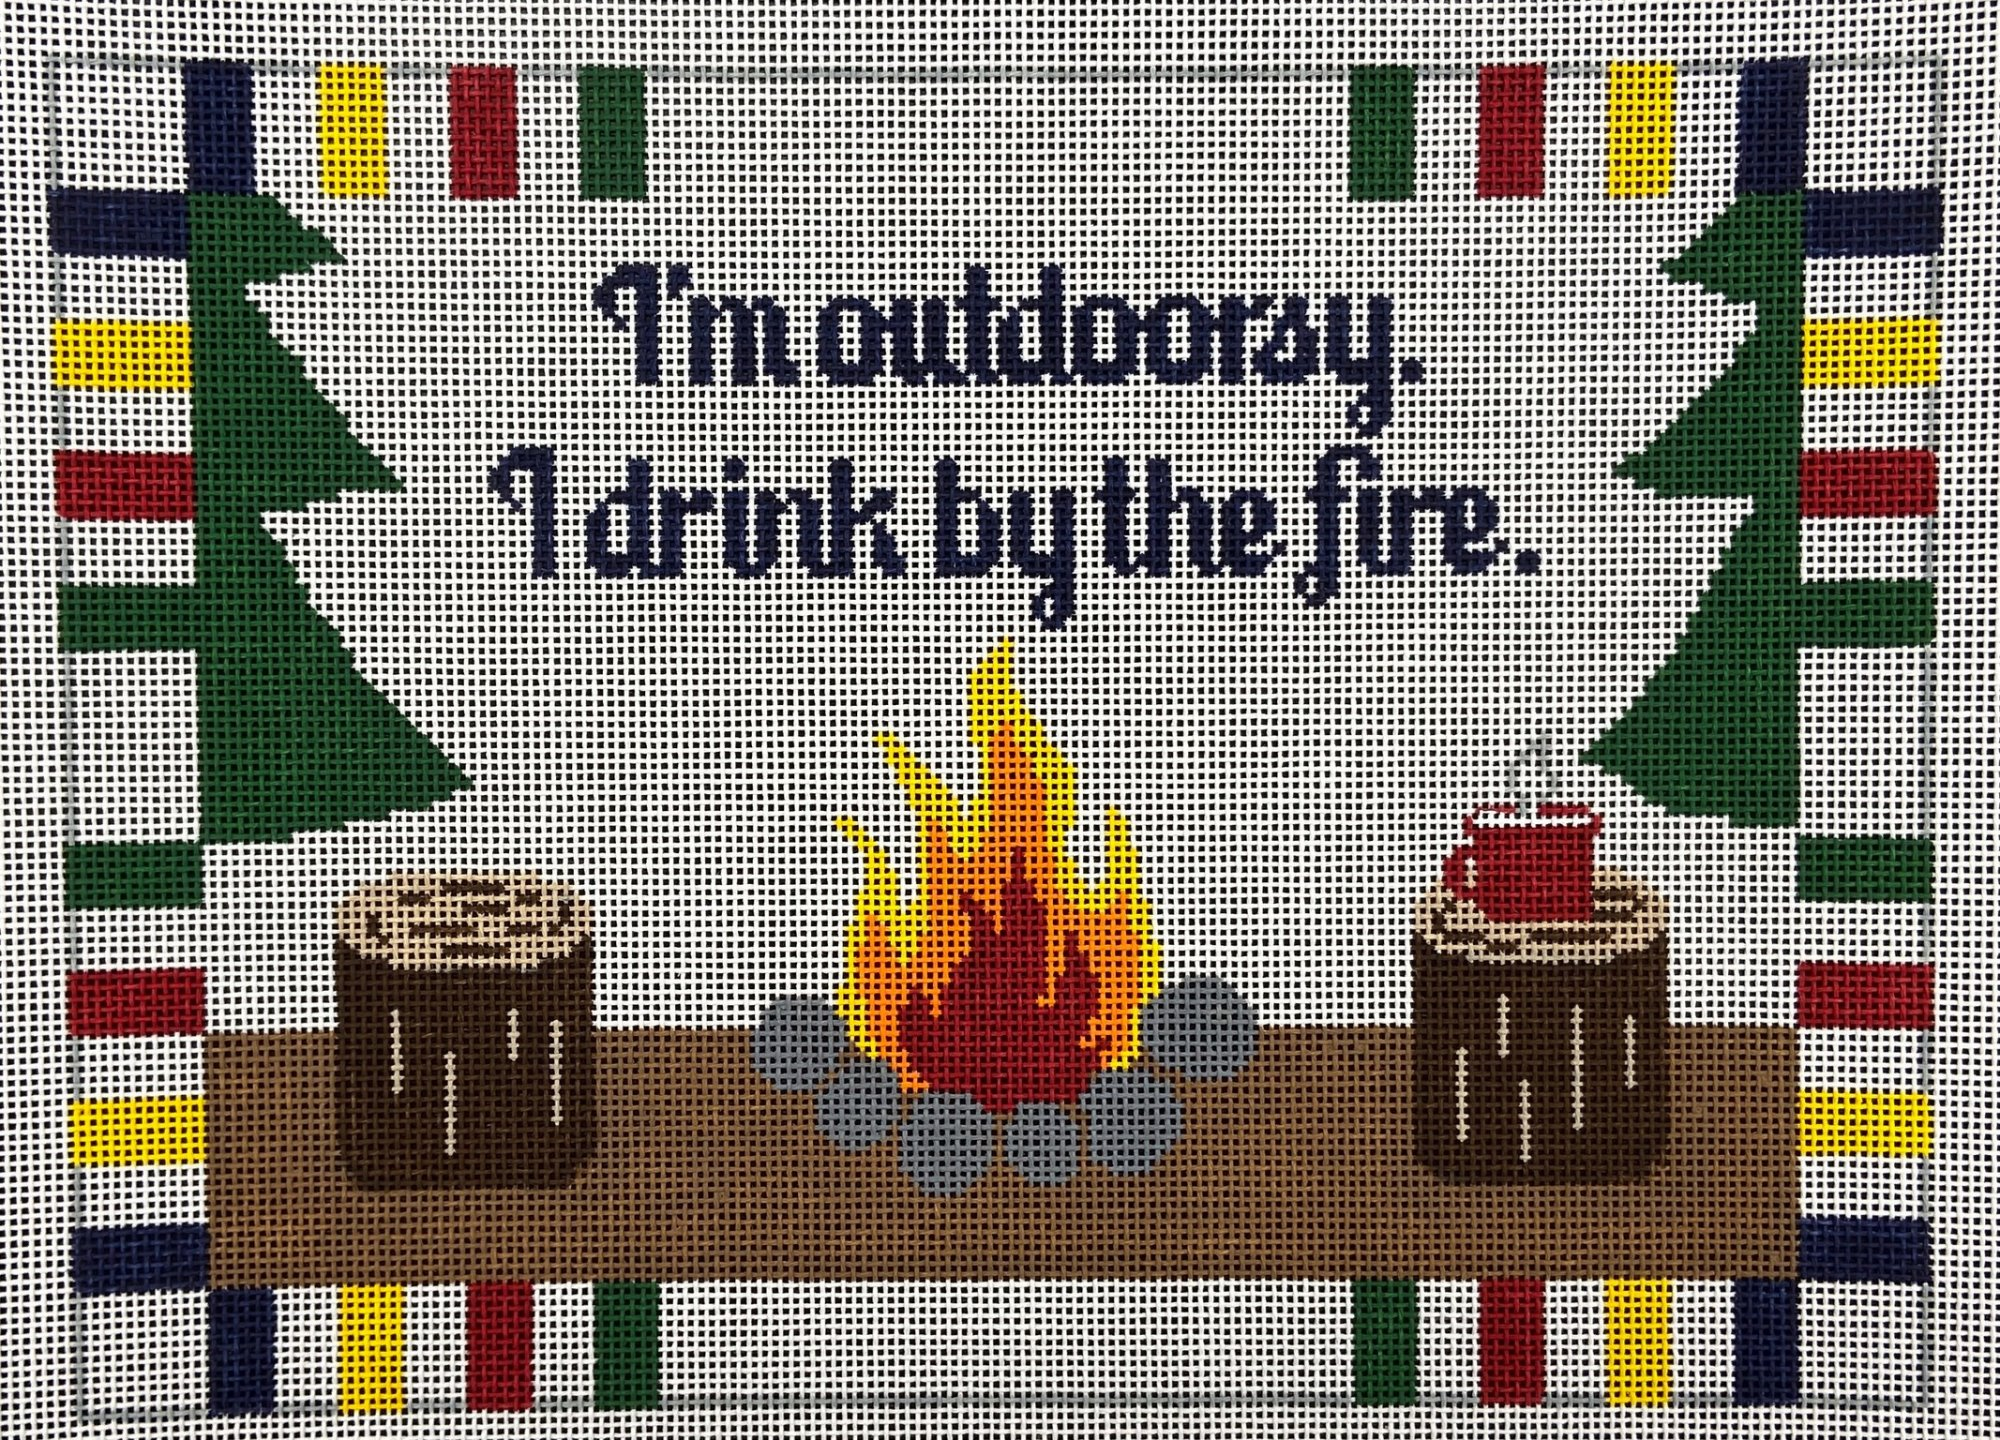 RD285 I'm Outdoorsy / Fire Rachel Donely Needlepoint Designs